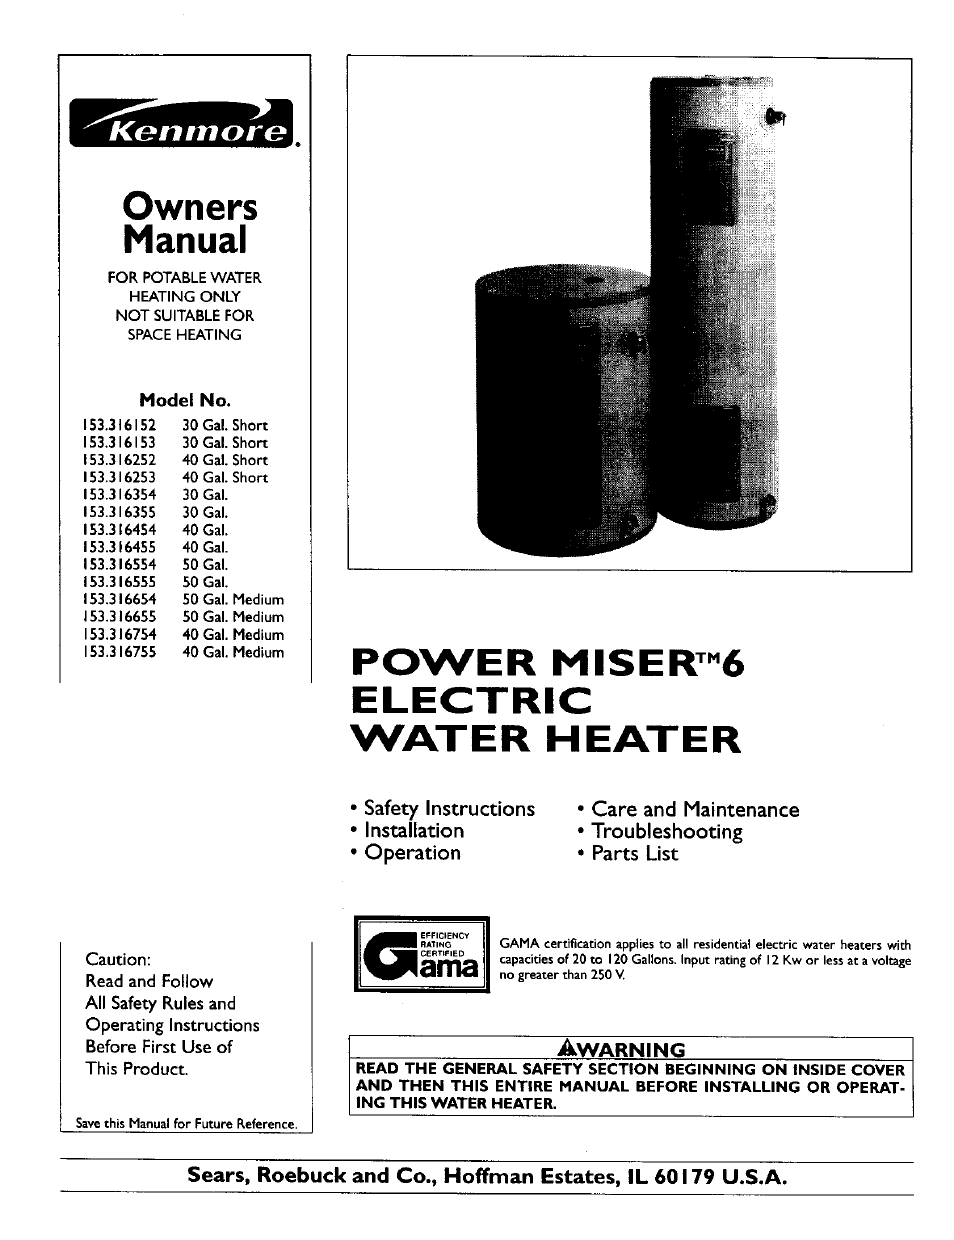 kenmore power miser 153 316555 user manual 32 pages also for  kenmore power miser 153 316555 user manual 32 pages also for power miser 153 316754, power miser 153 316354, power miser 153 316253,